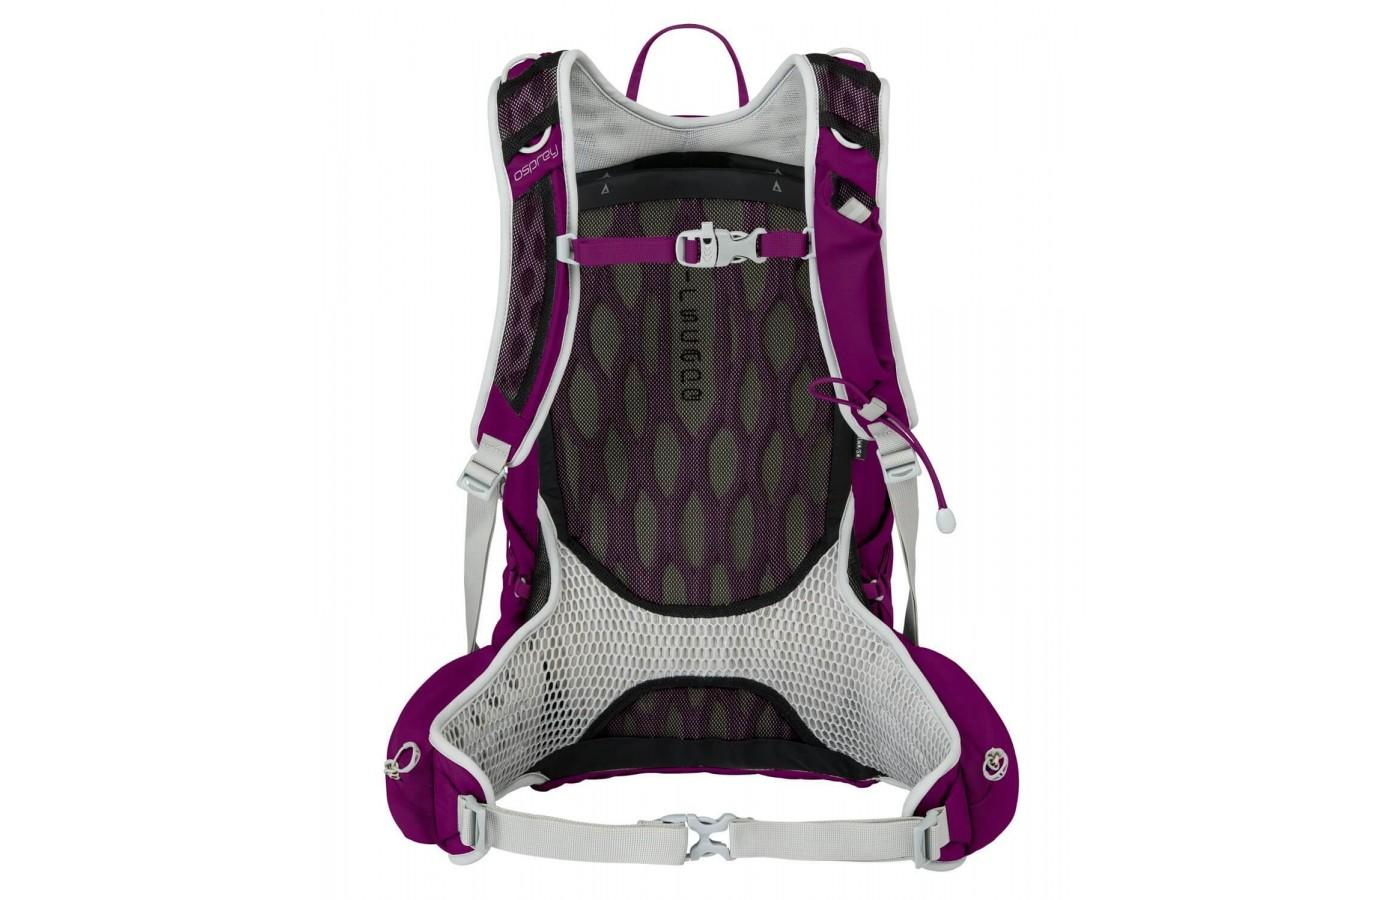 The patented AirSpace Back Panel add breathability.